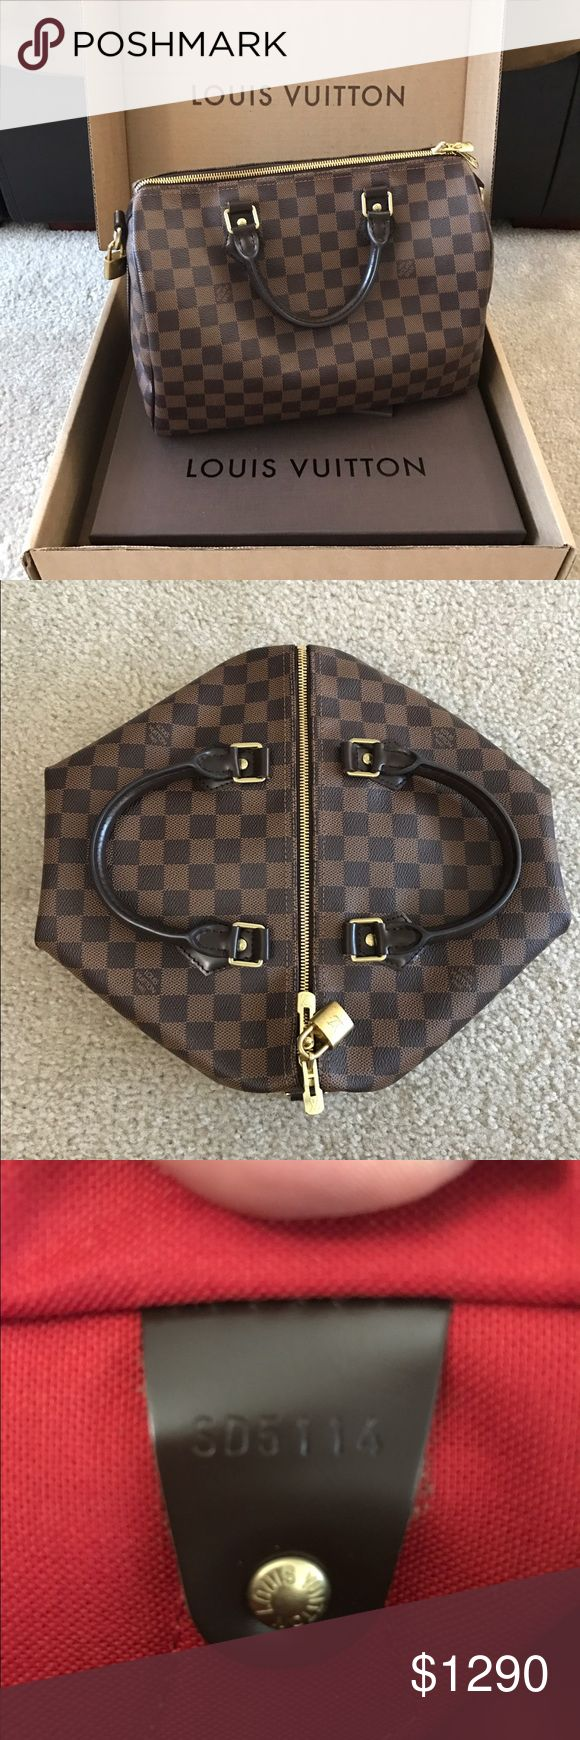 louis vuitton speedy no date code Louis vuitton key pouch damier ebene date code- ct0176 louis vuitton speedy 35 bandoulière damier ebene bag 8500,00 sek.